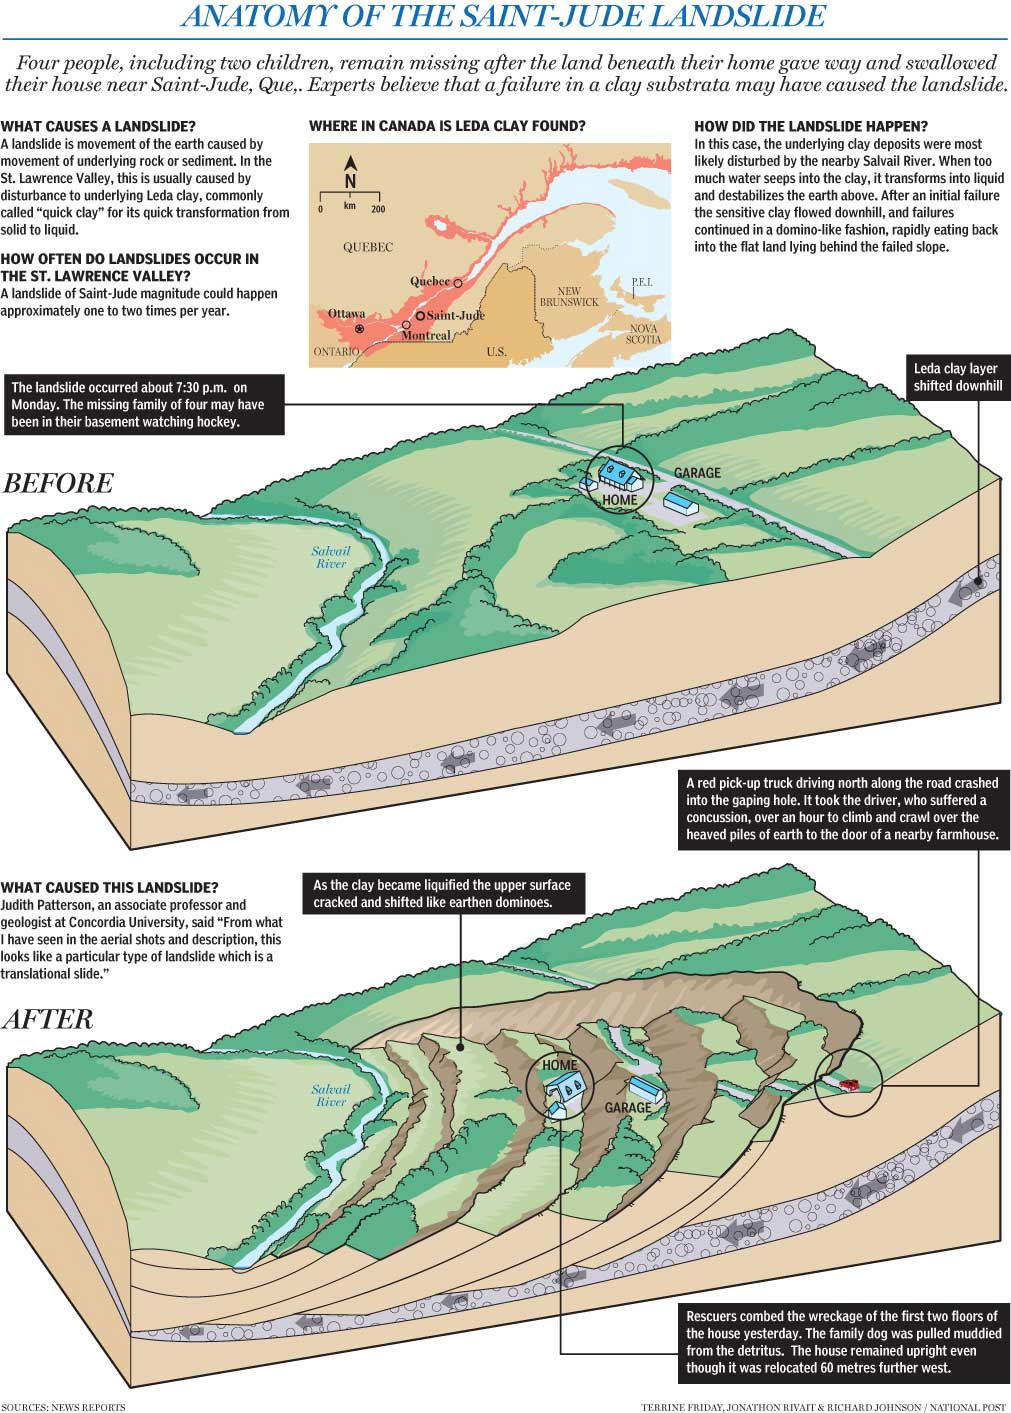 Anatomy-of-mudslide-web – NJN Network